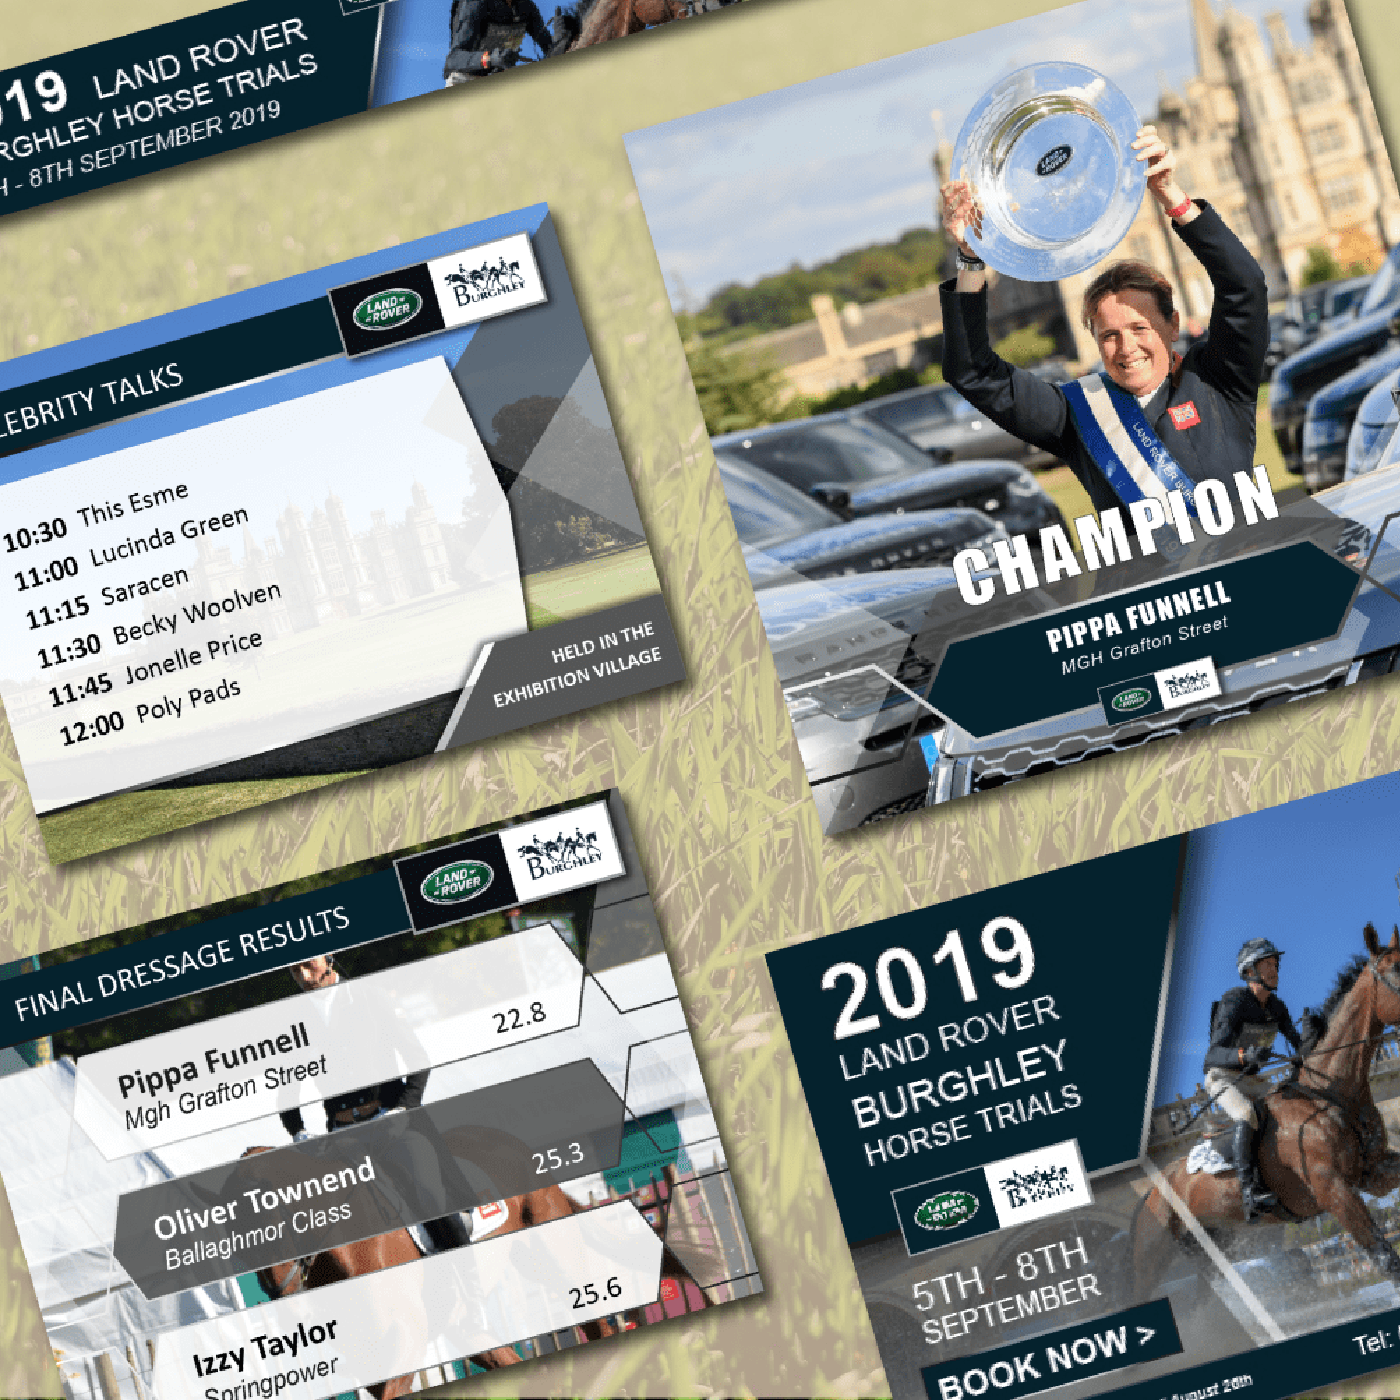 photo mix of results from 2019 Land Rover Burghley Horse Trials